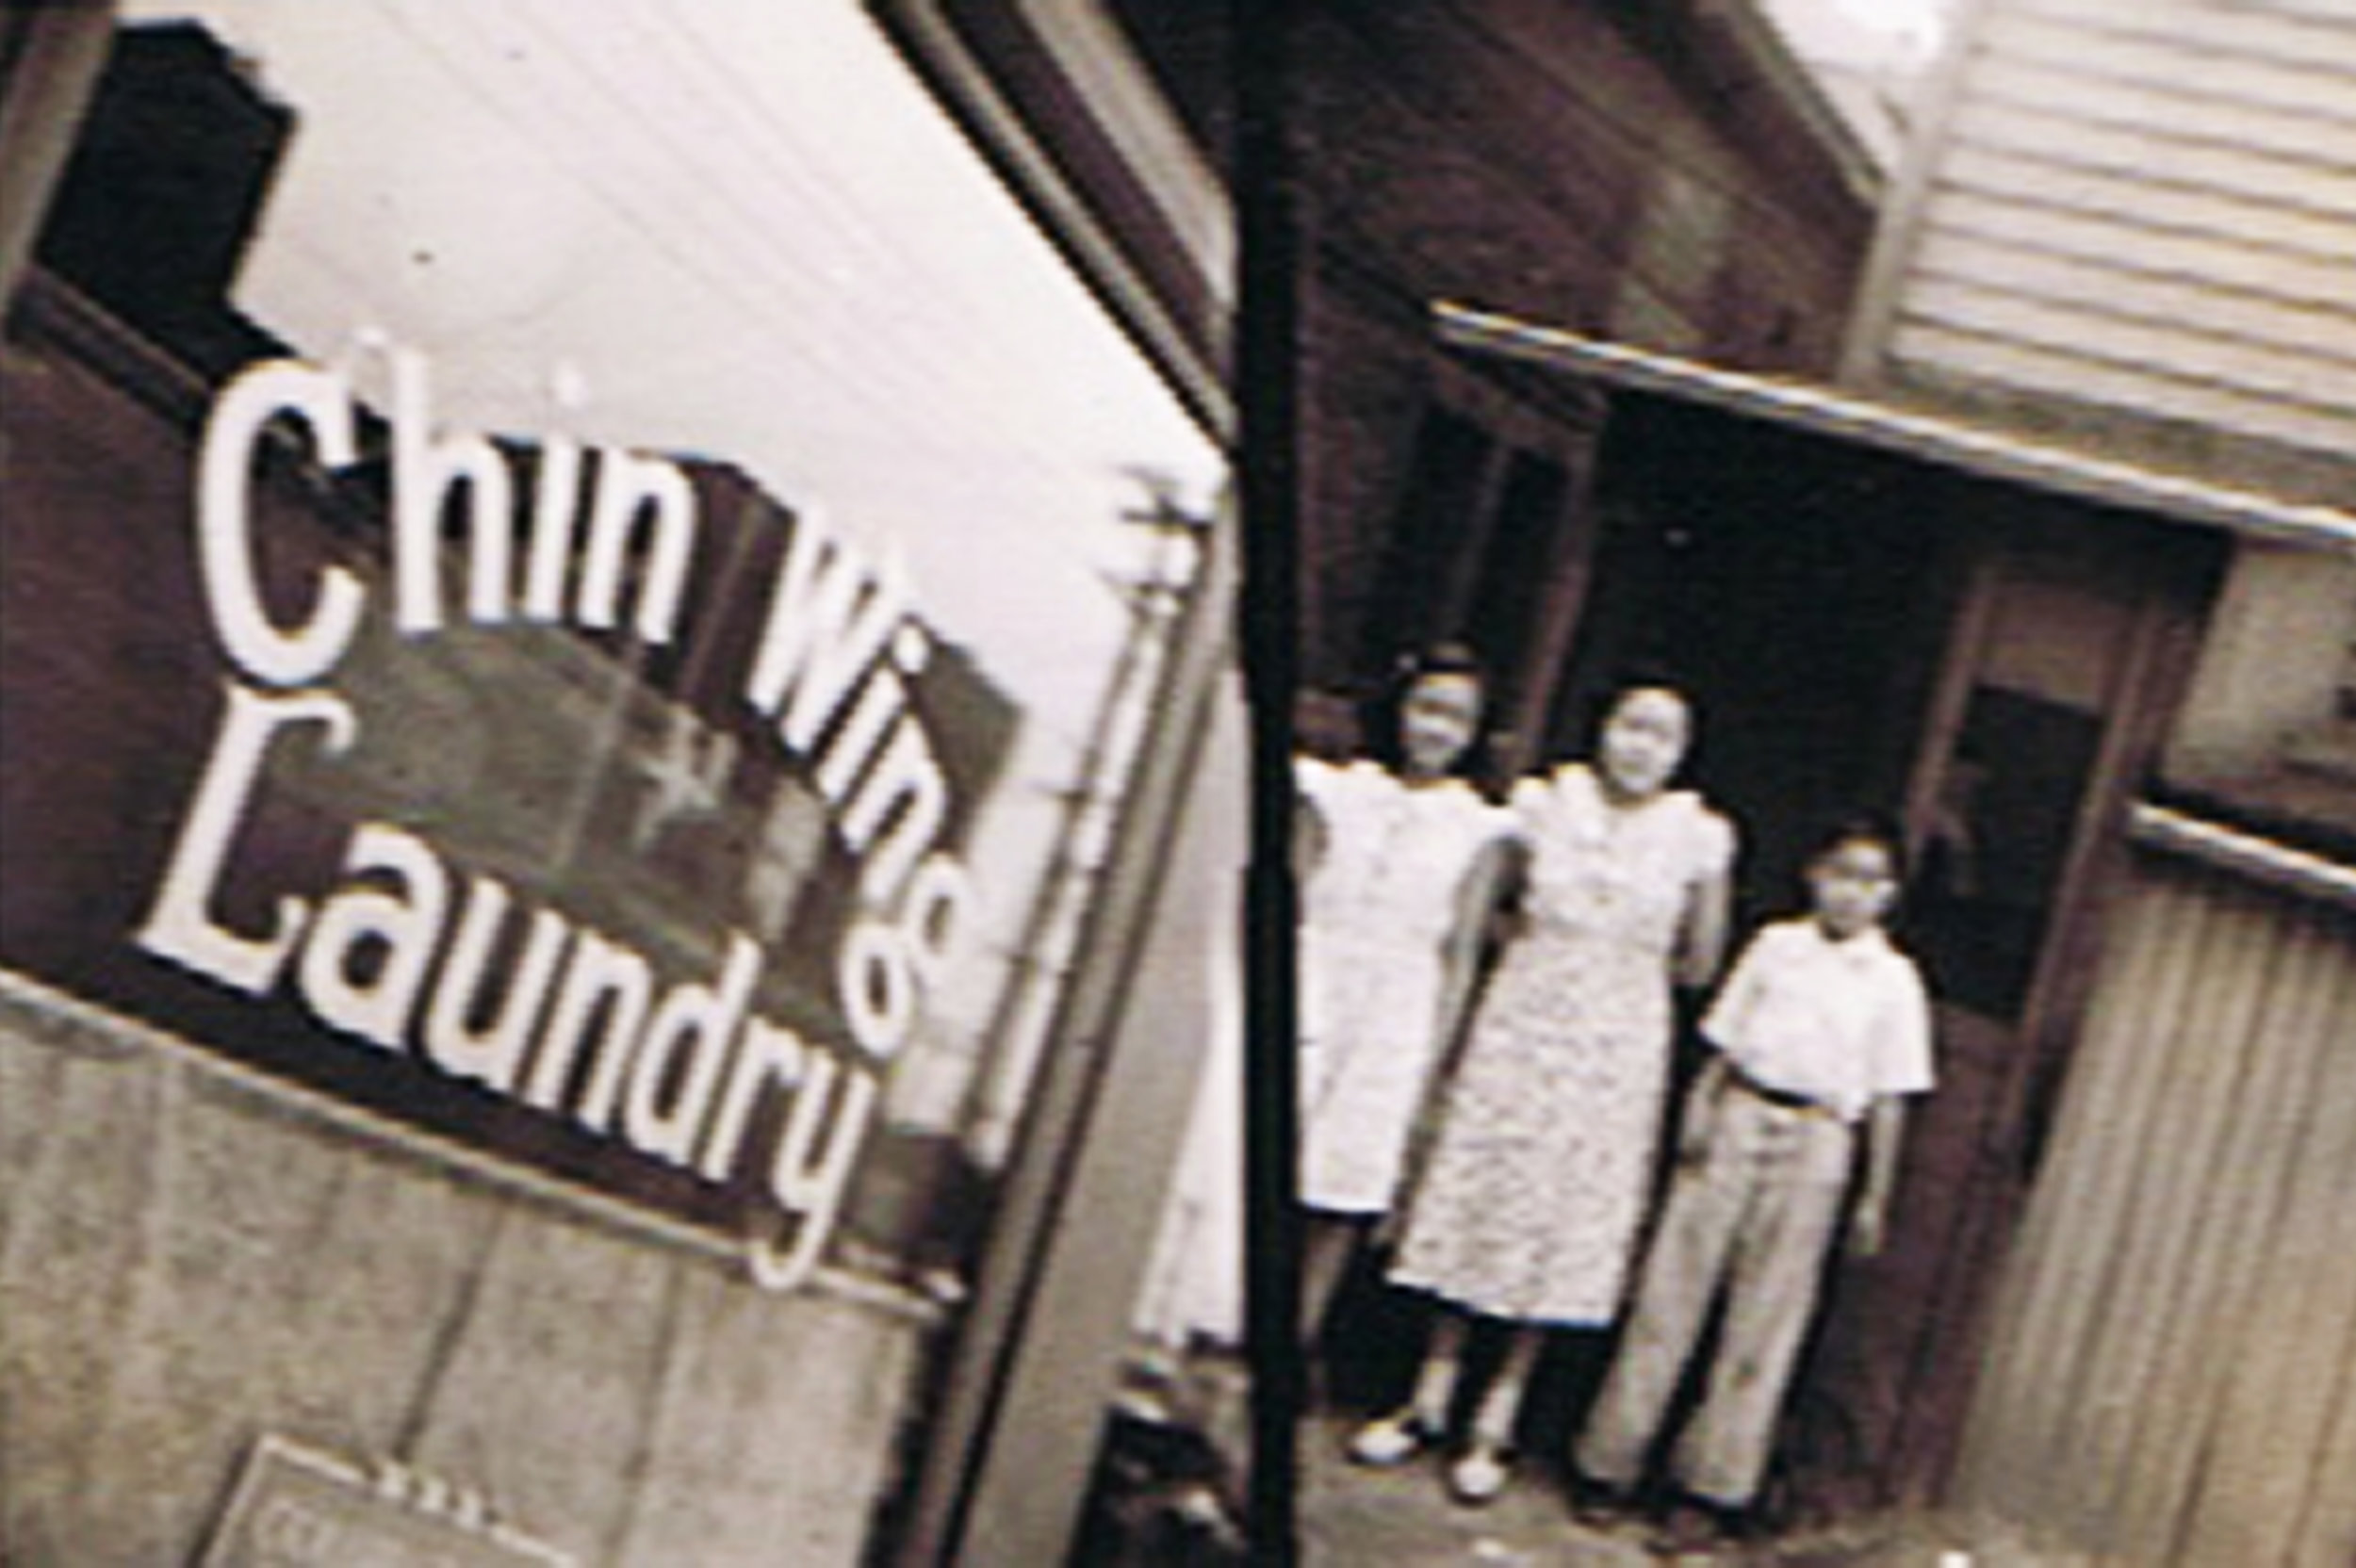 chin wing laundry.jpg